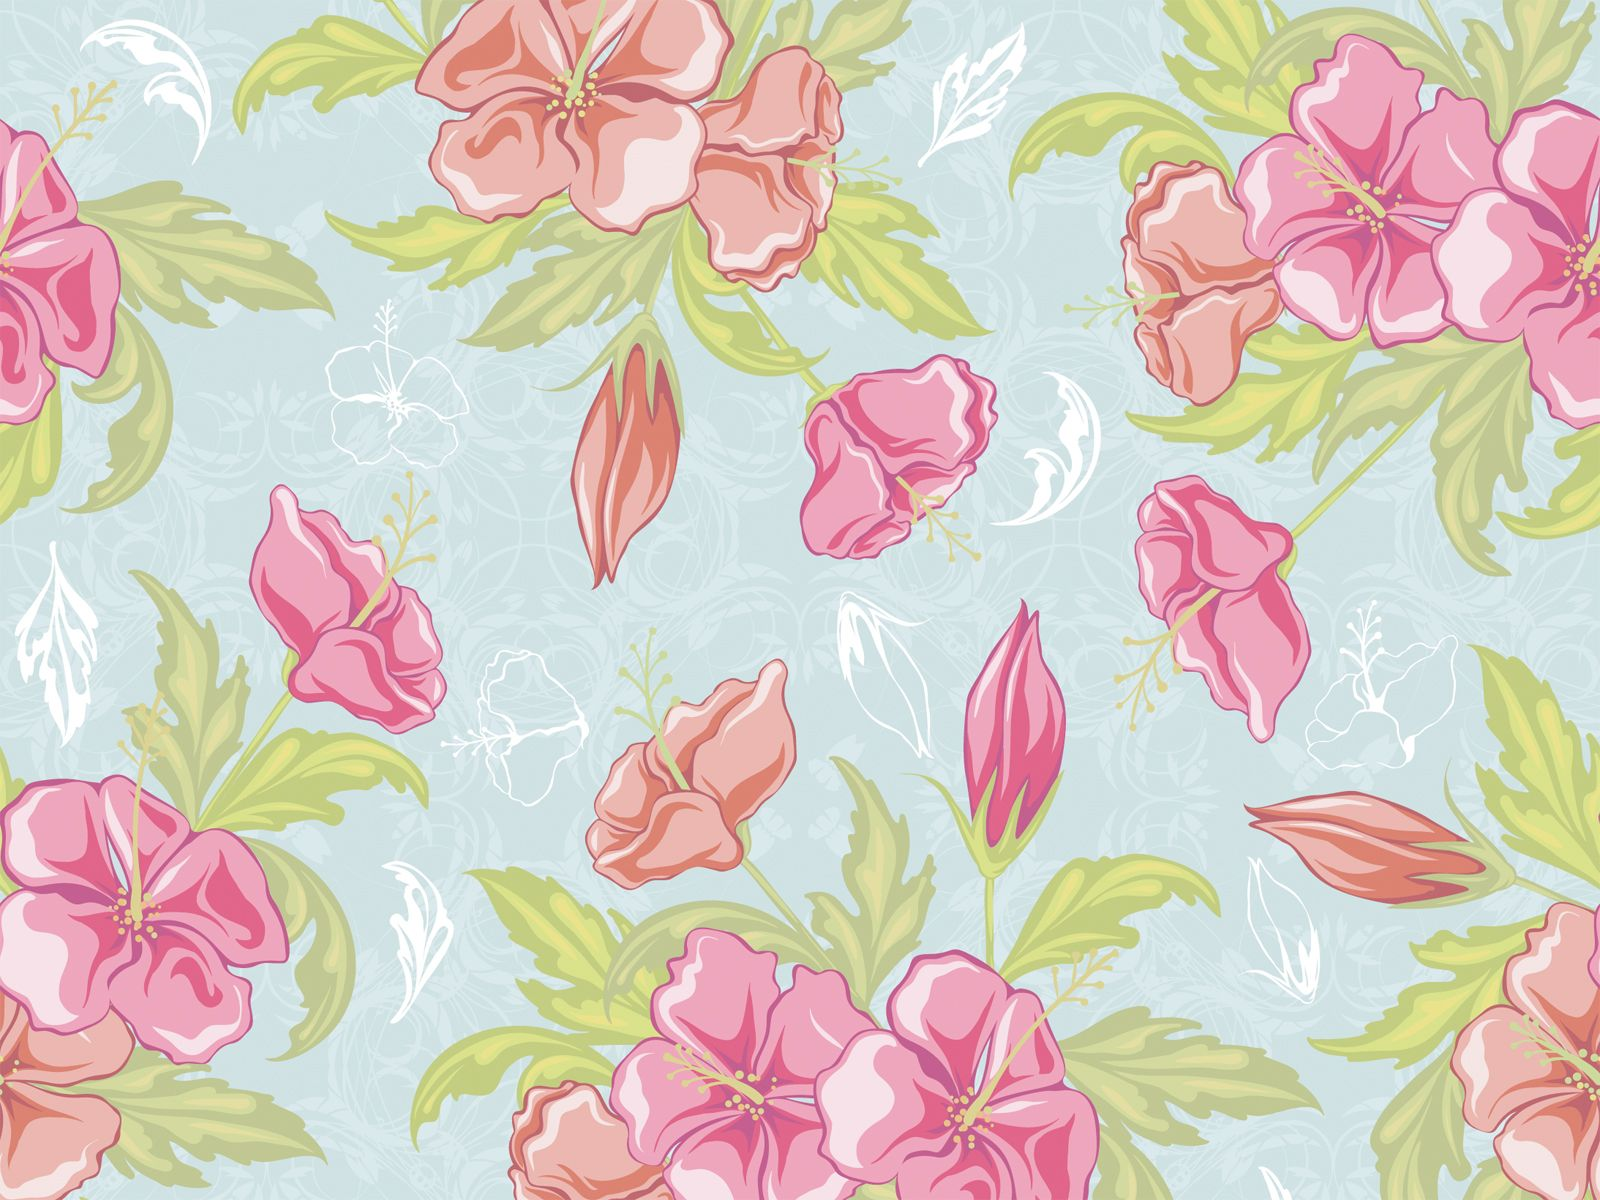 HD Vintage Flower Backgrounds | PixelsTalk.Net